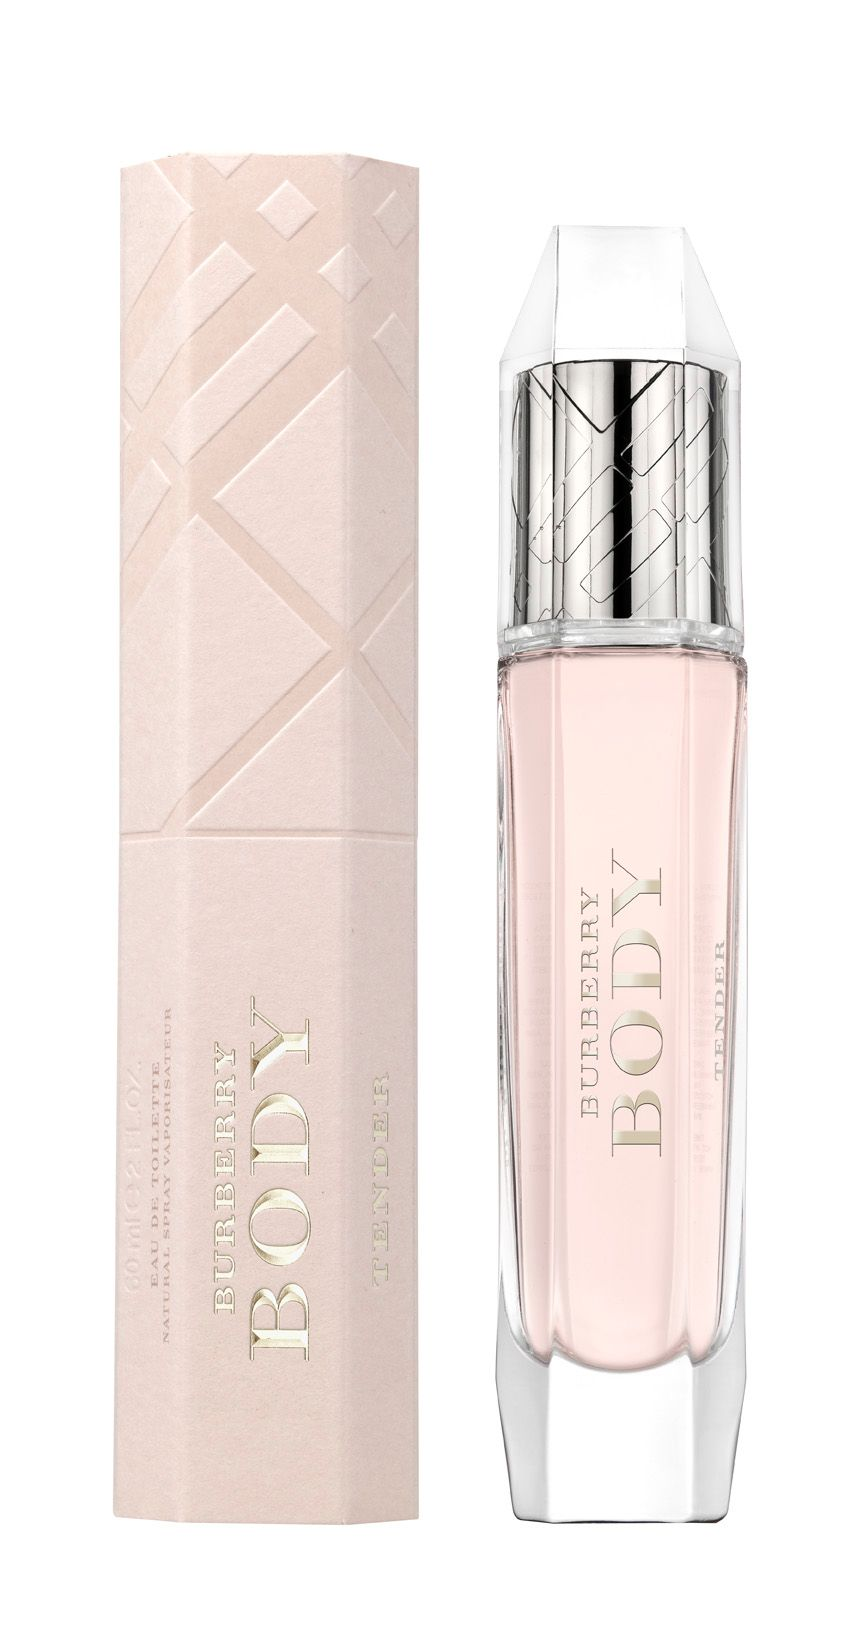 Burberry Body Tender Eau de Toilette 60ml